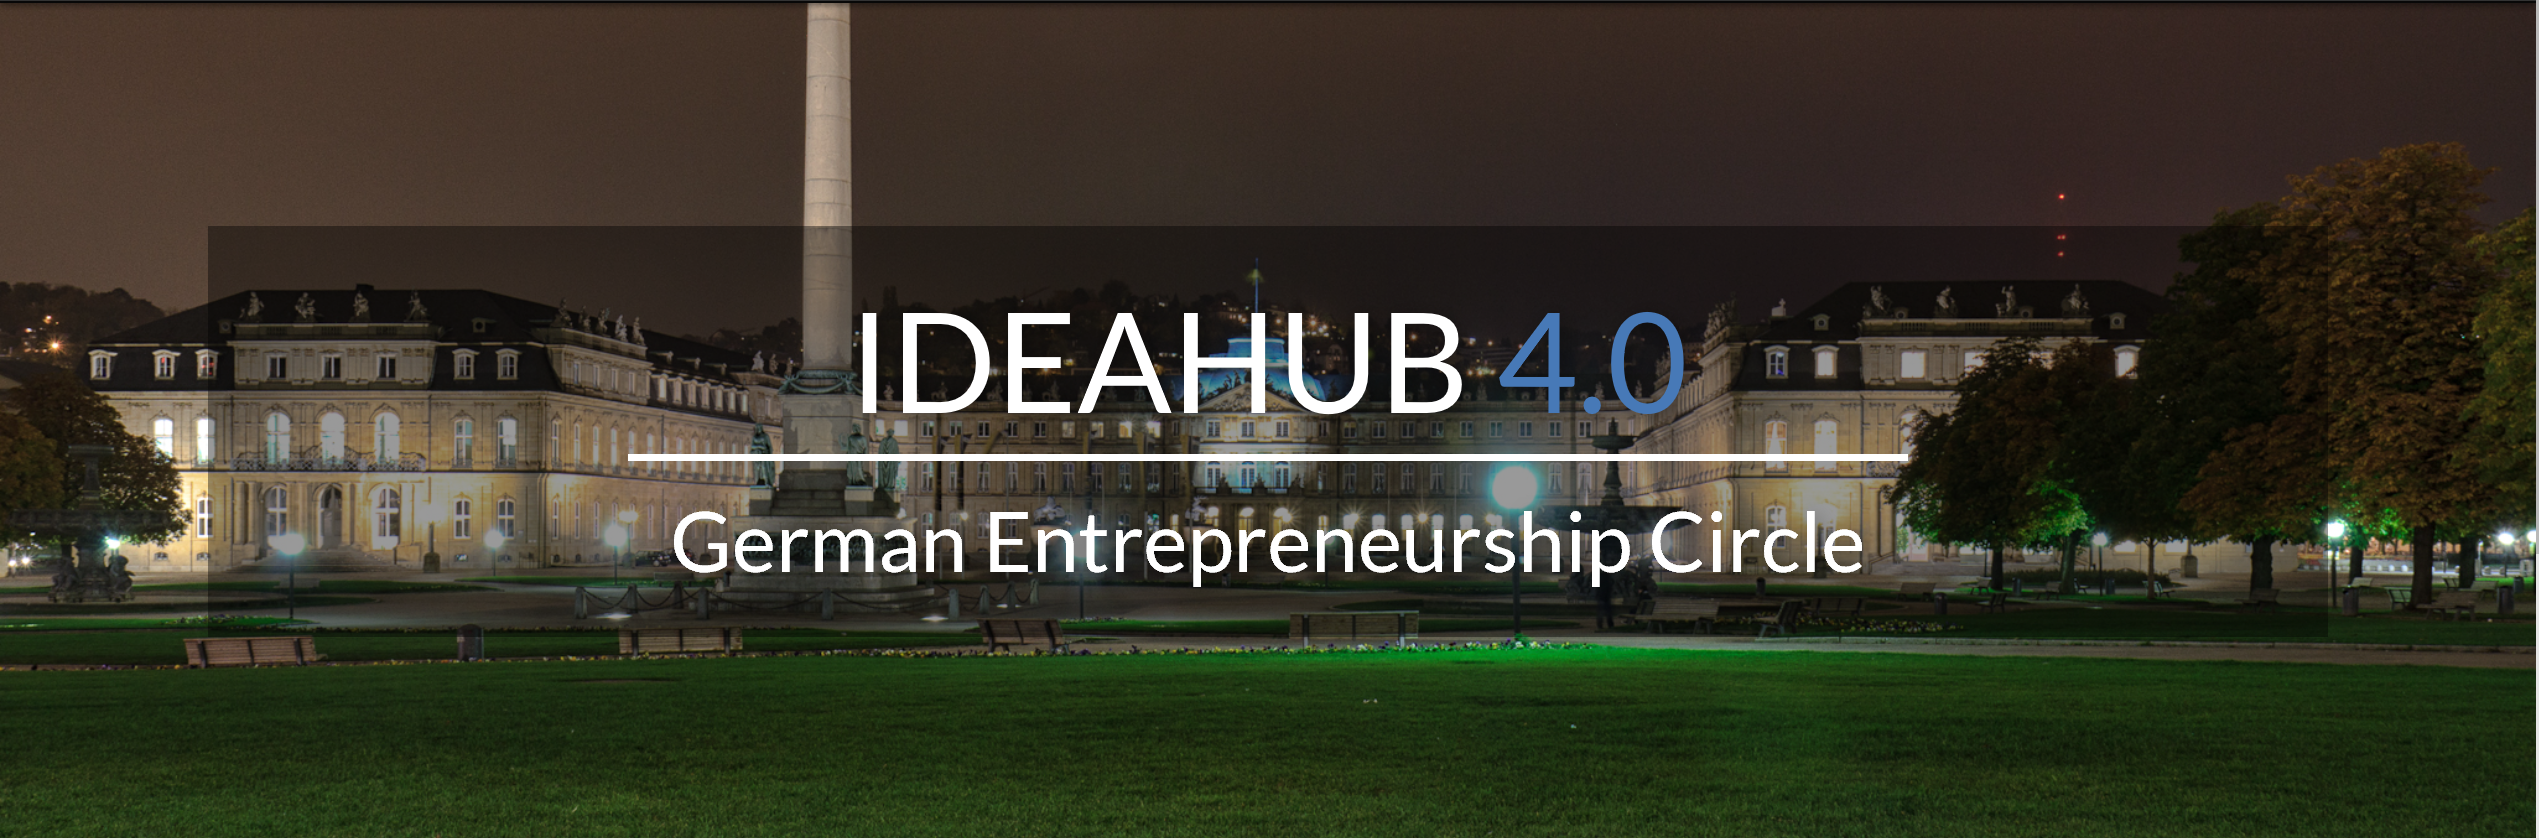 GEC IdeaHub 4.0 | 03-05 November 2017 Stuttgart